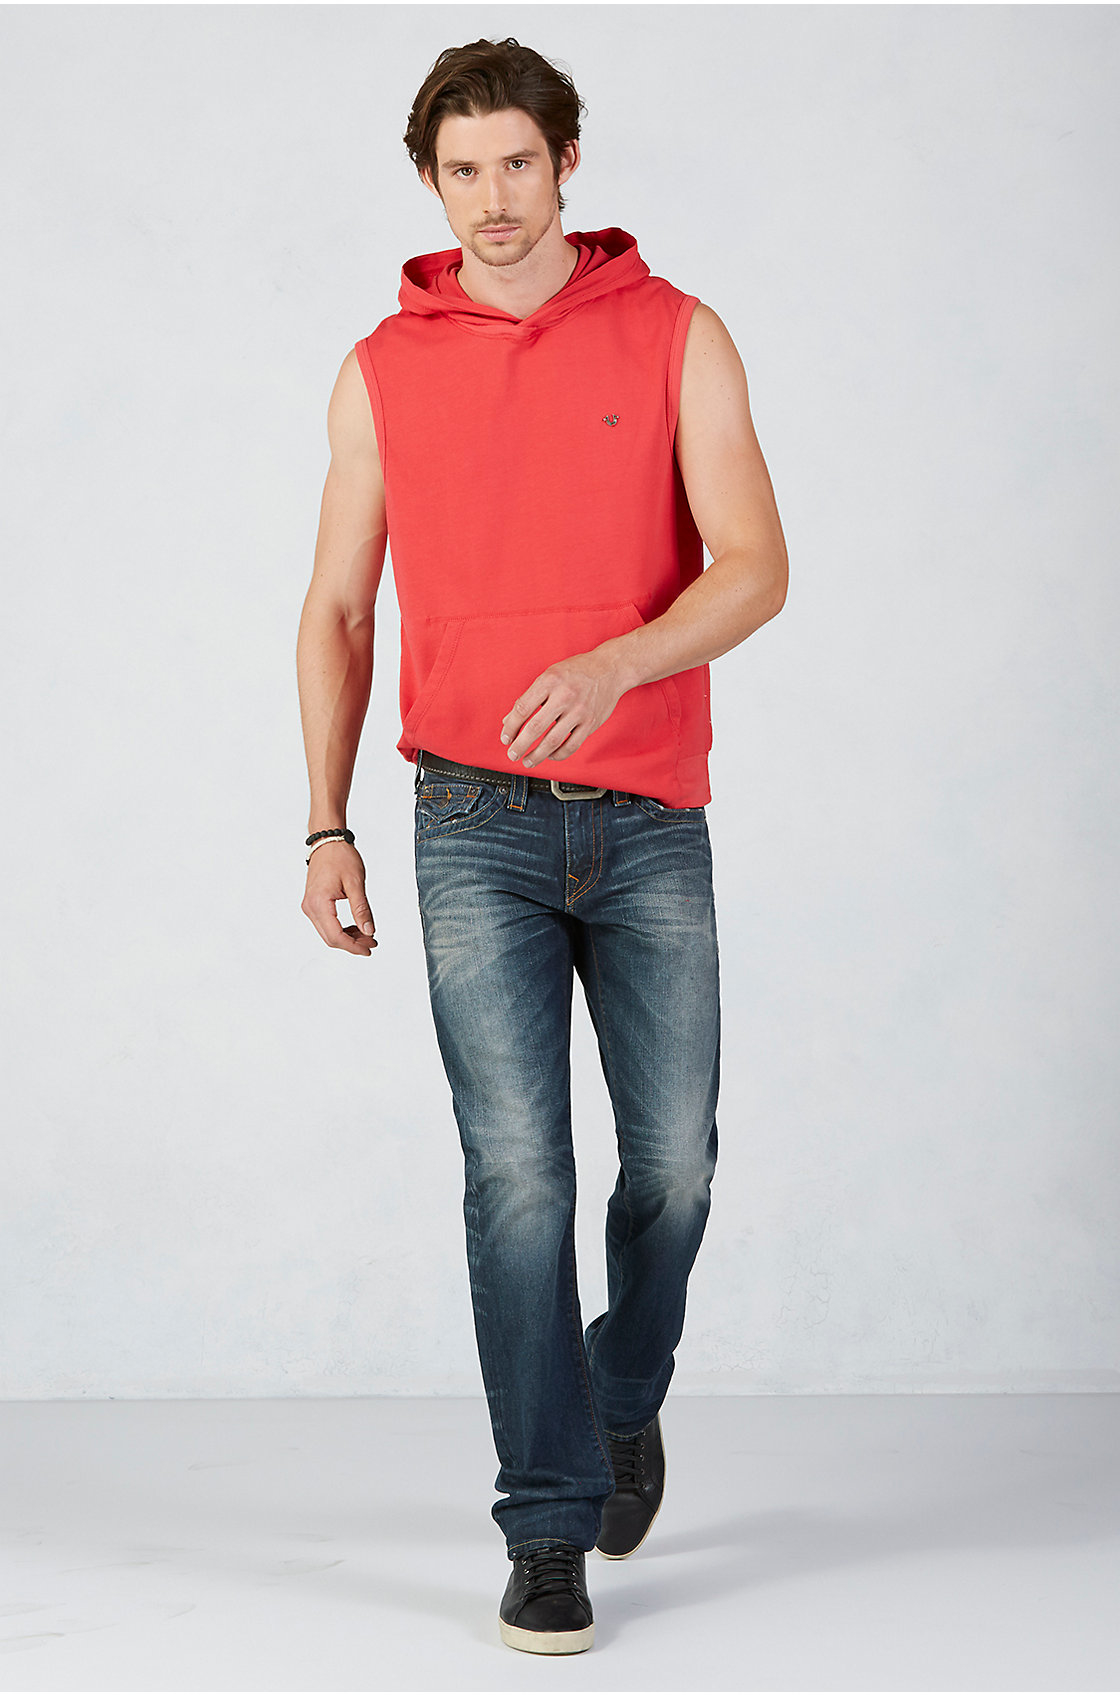 true religion pullover sleeveless mens hoodie in red for